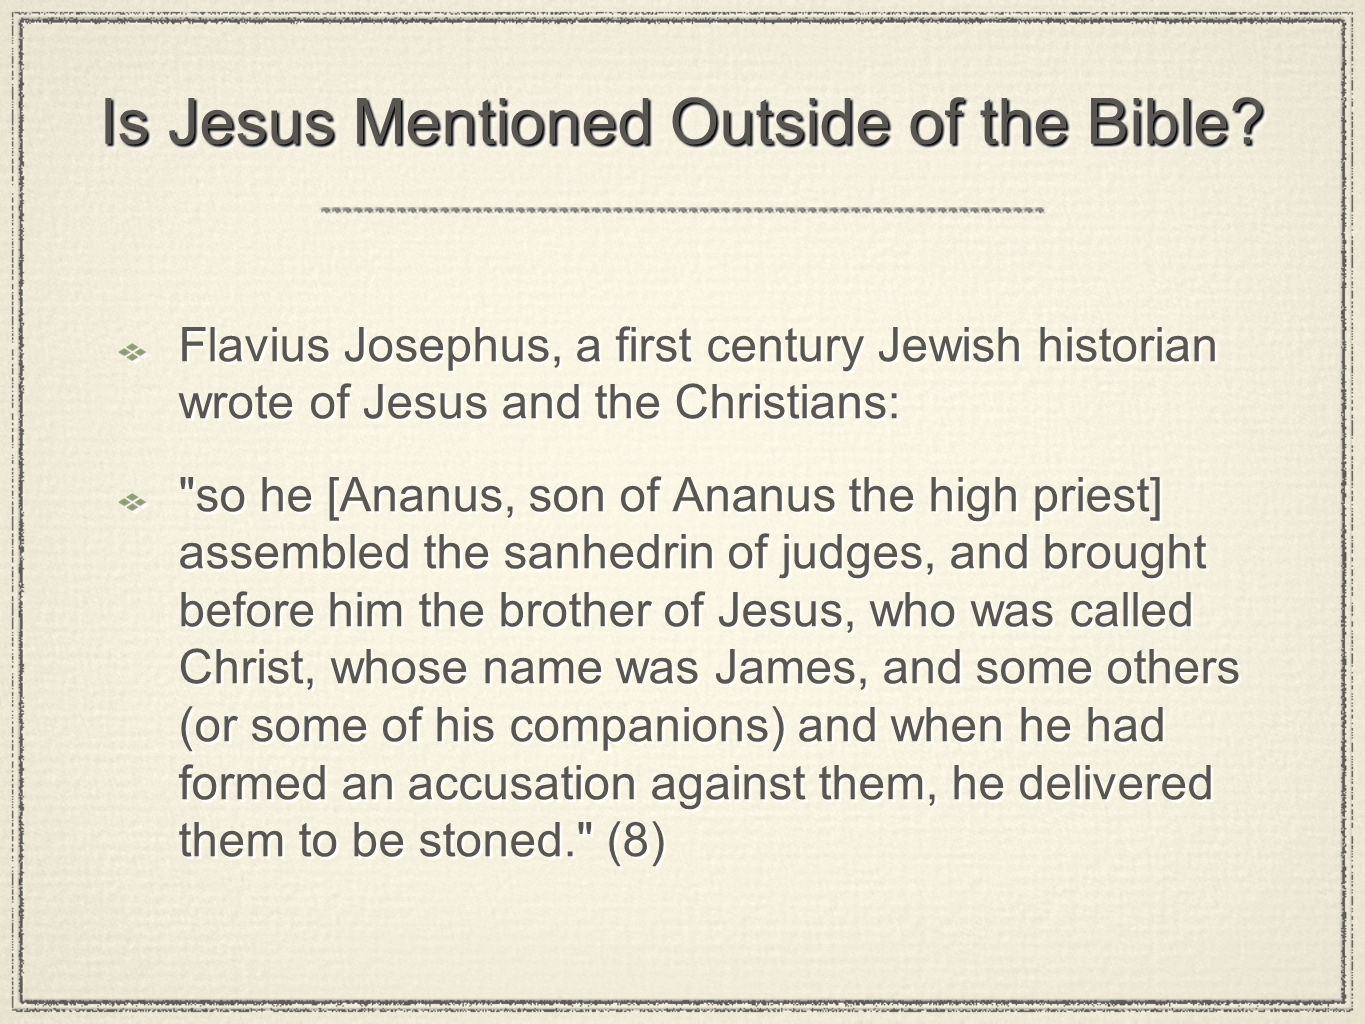 Is Jesus Mentioned Outside of the Bible